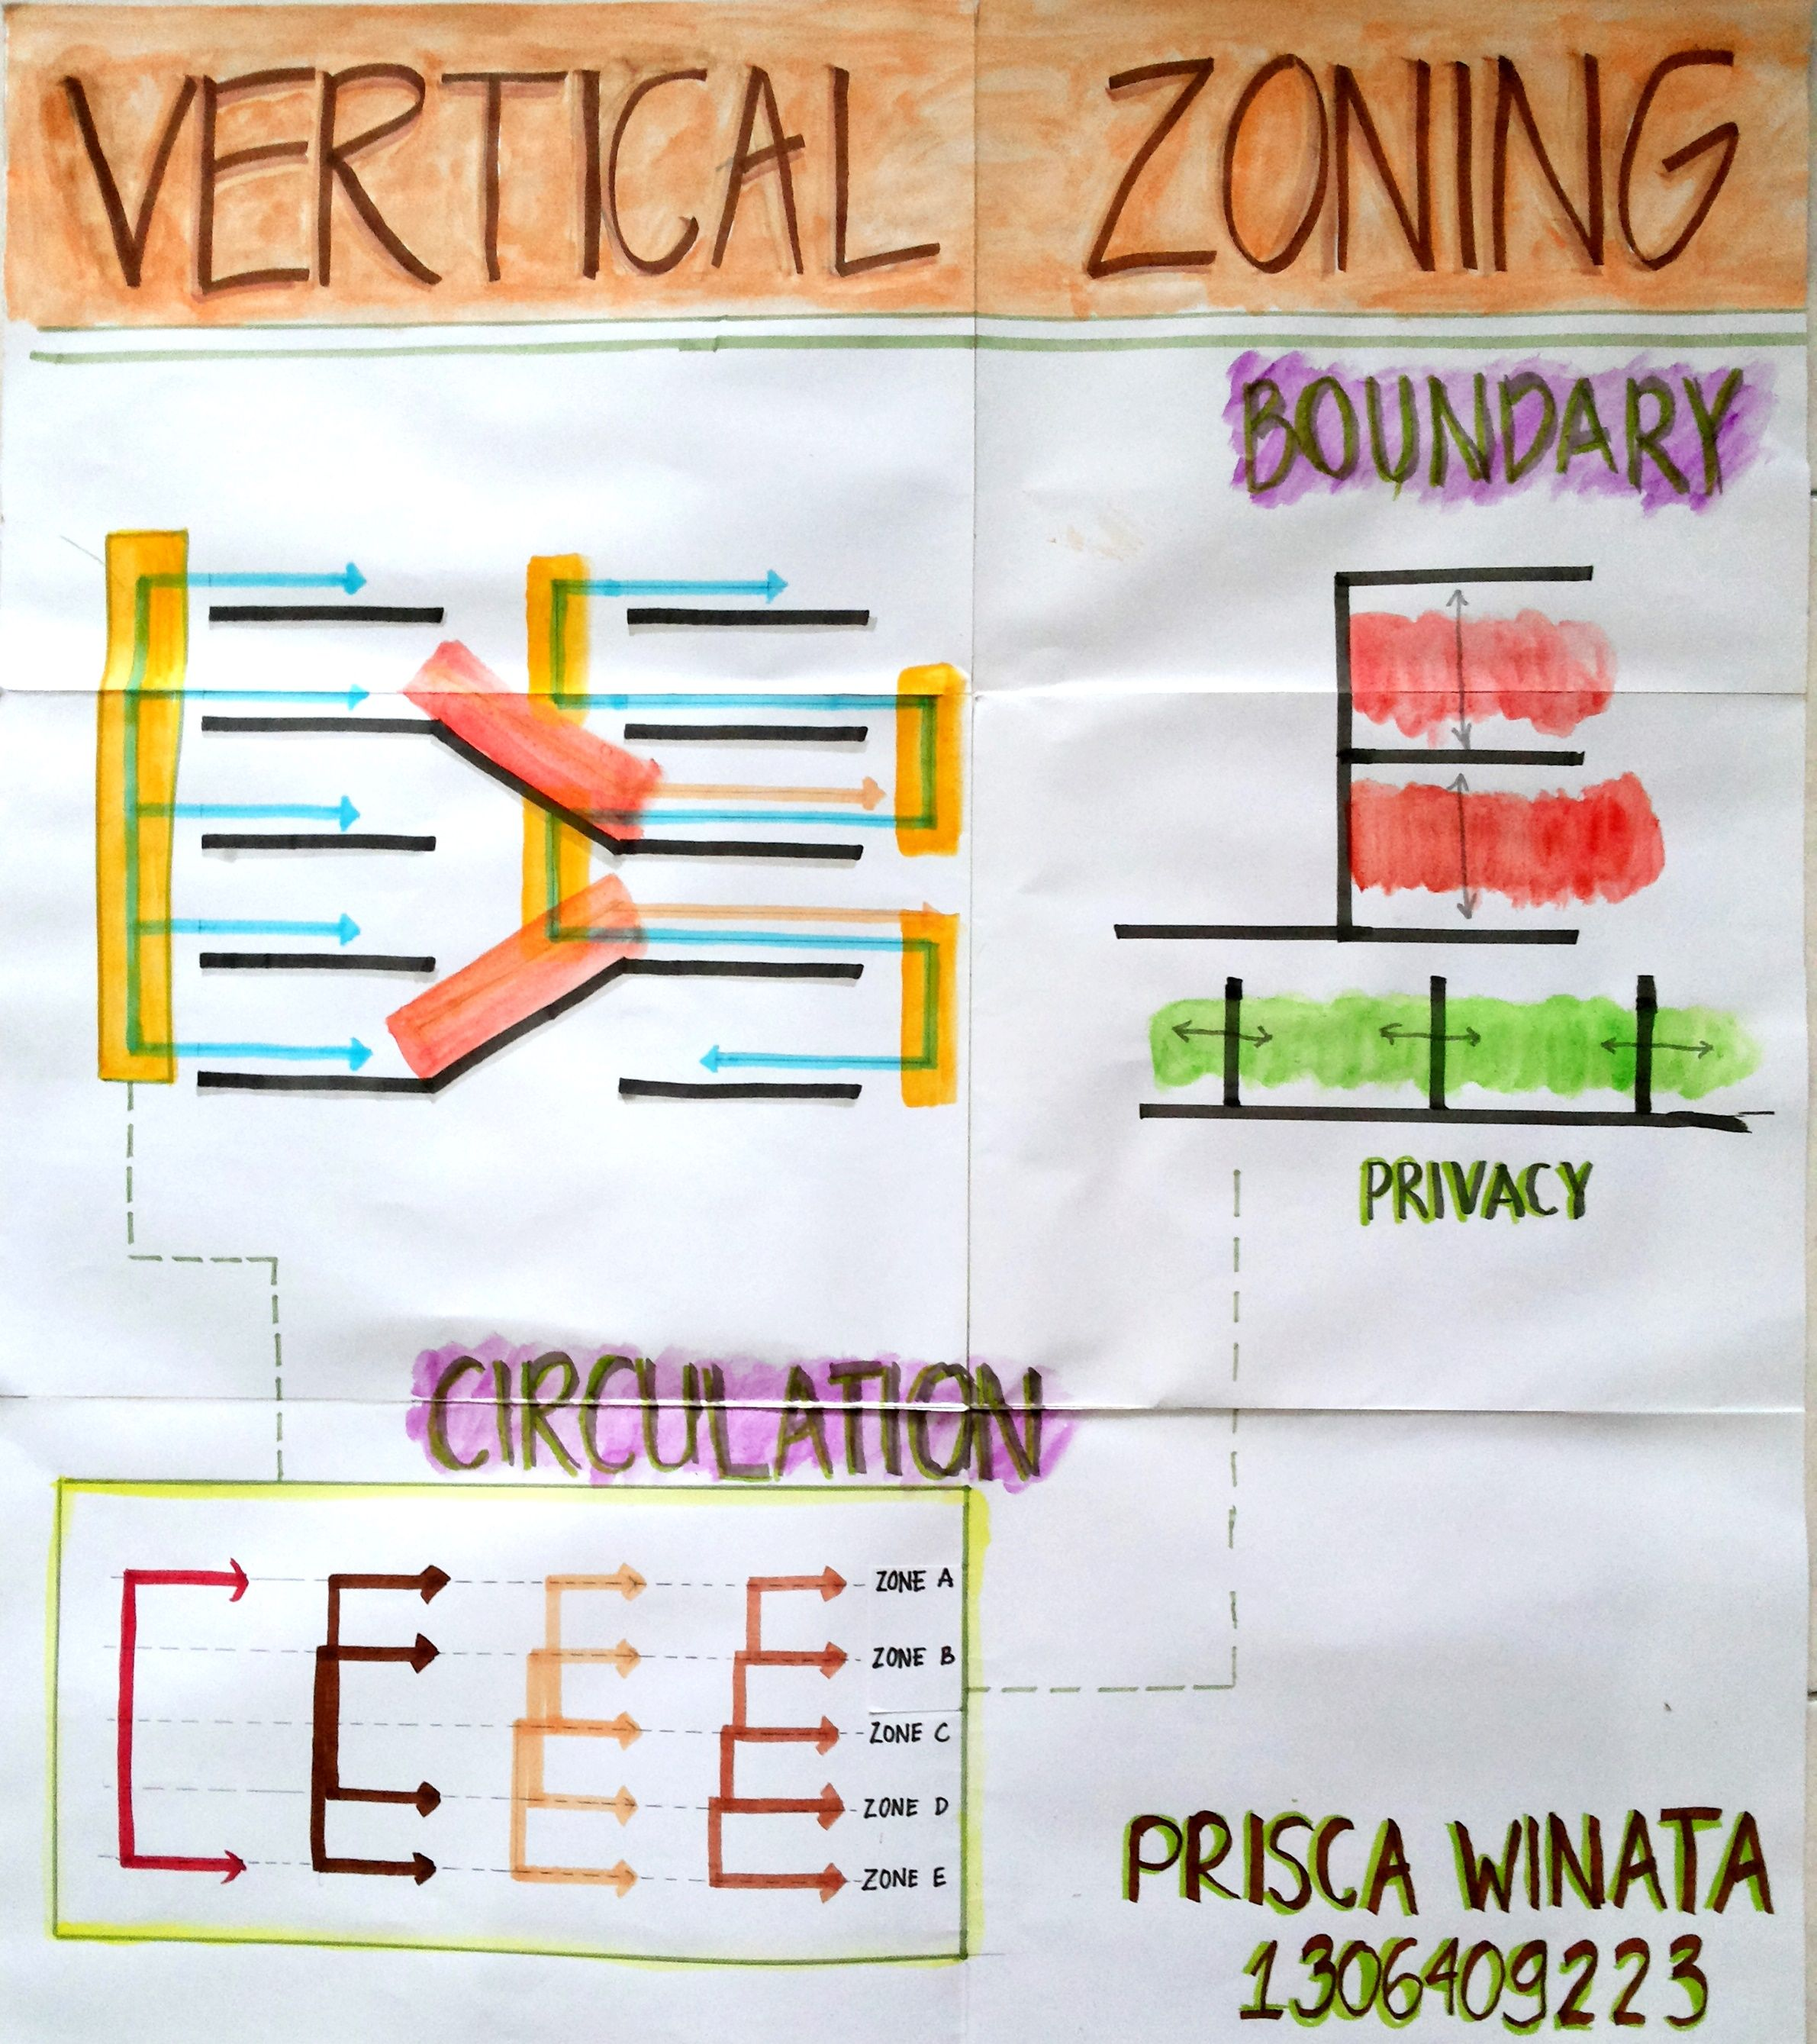 VERTICAL ZONING 4 X 4 House Analysis By Prisca Winata